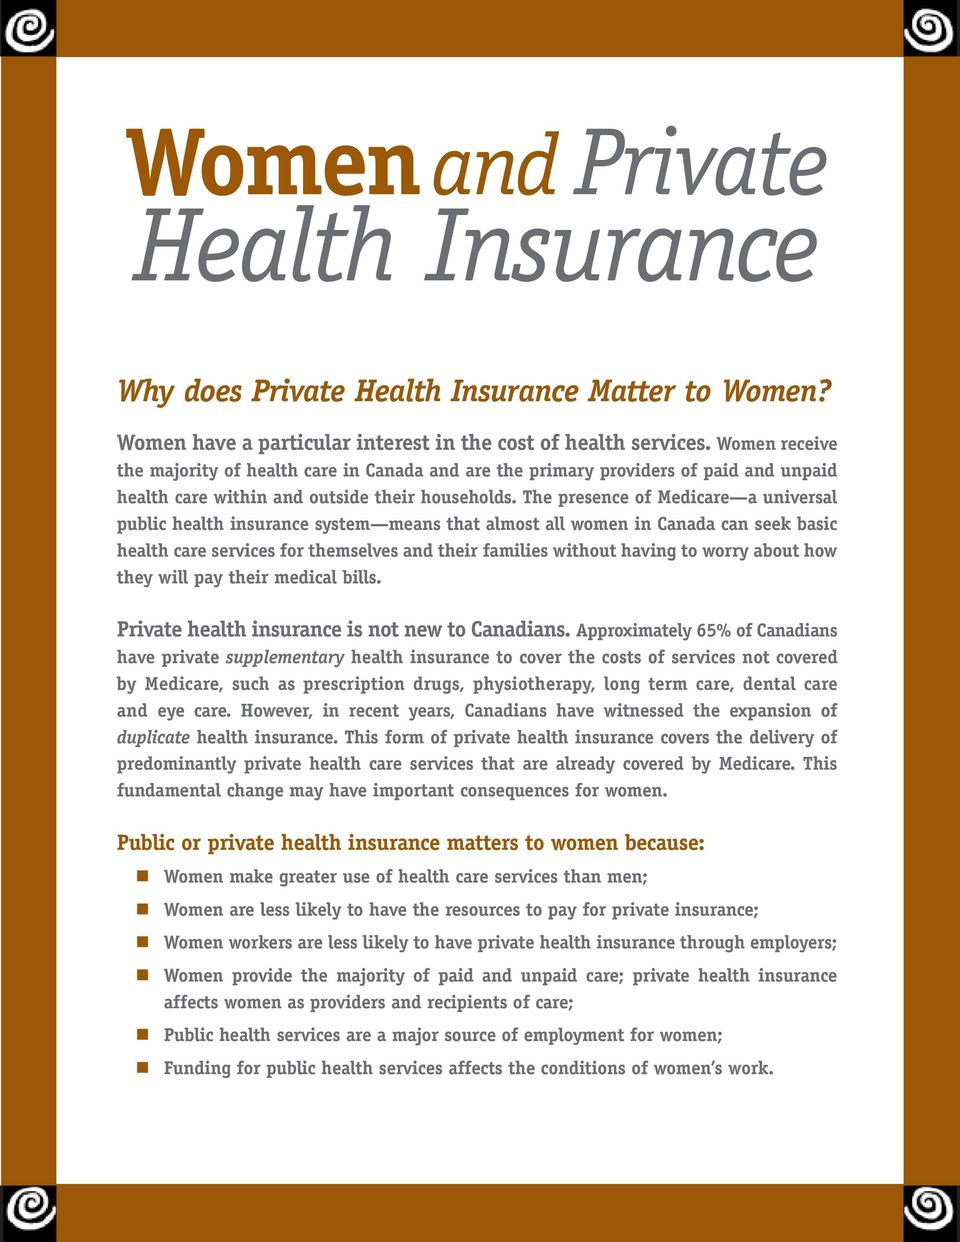 The presence of Medicare a universal public health insurance system means that almost all women in Canada can seek basic health care services for themselves and their families without having to worry